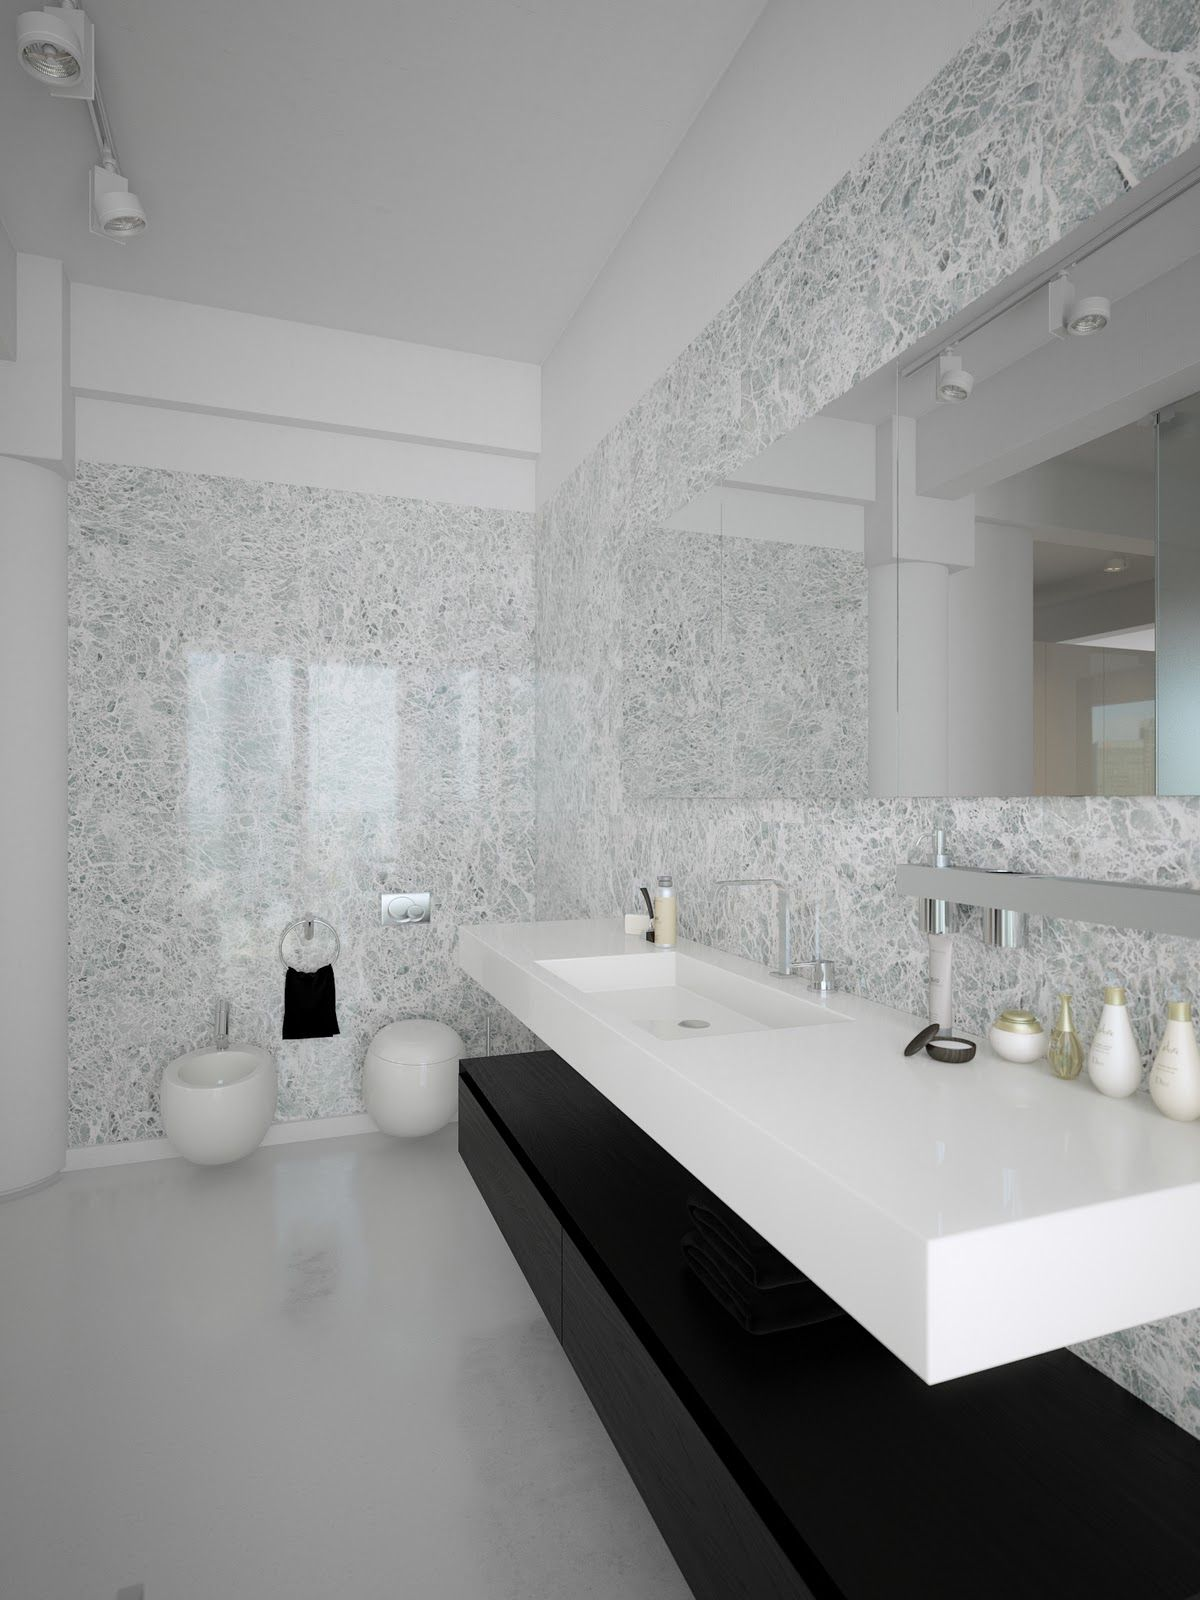 Coolest minimalist modern bathroom design contemporary bathroom designs contemporary - Modern bathroom decorations ...